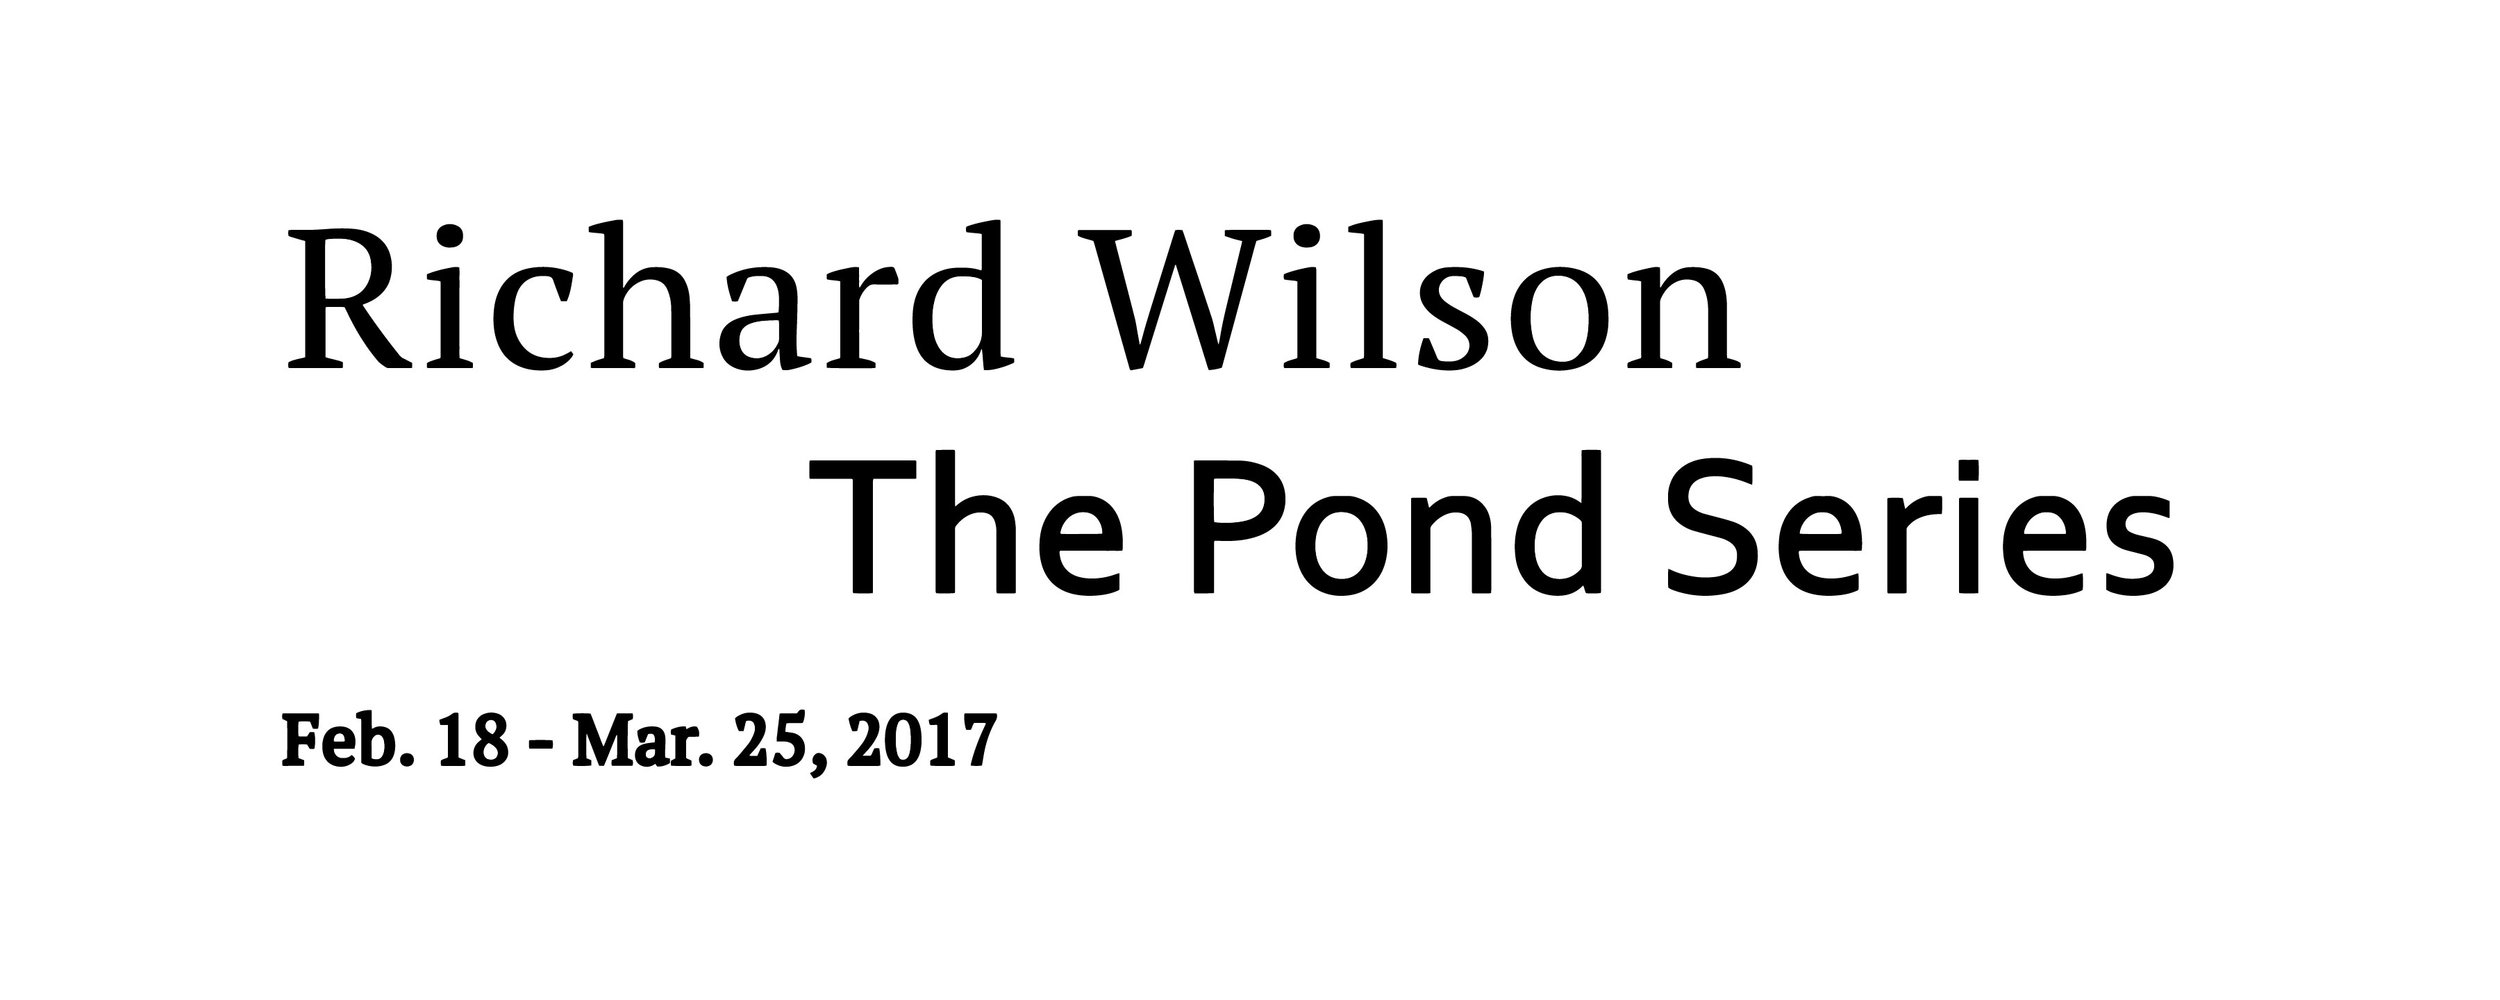 RichardWilson2017.jpg